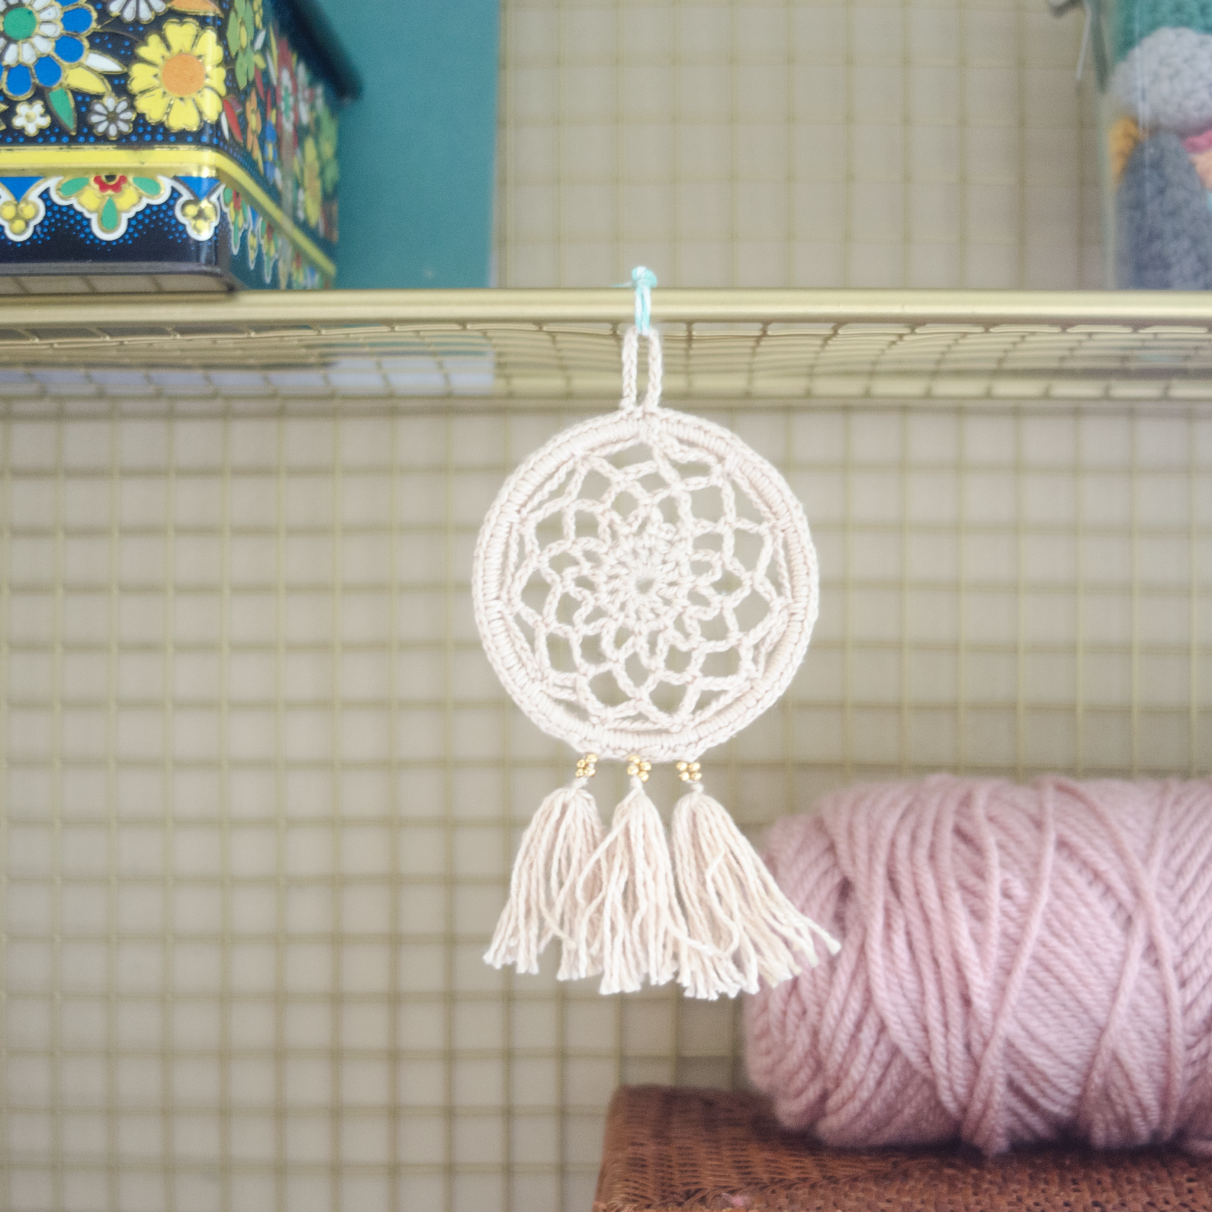 mini dream catcher free pattern | picot pals | Knitting & Crochet ...